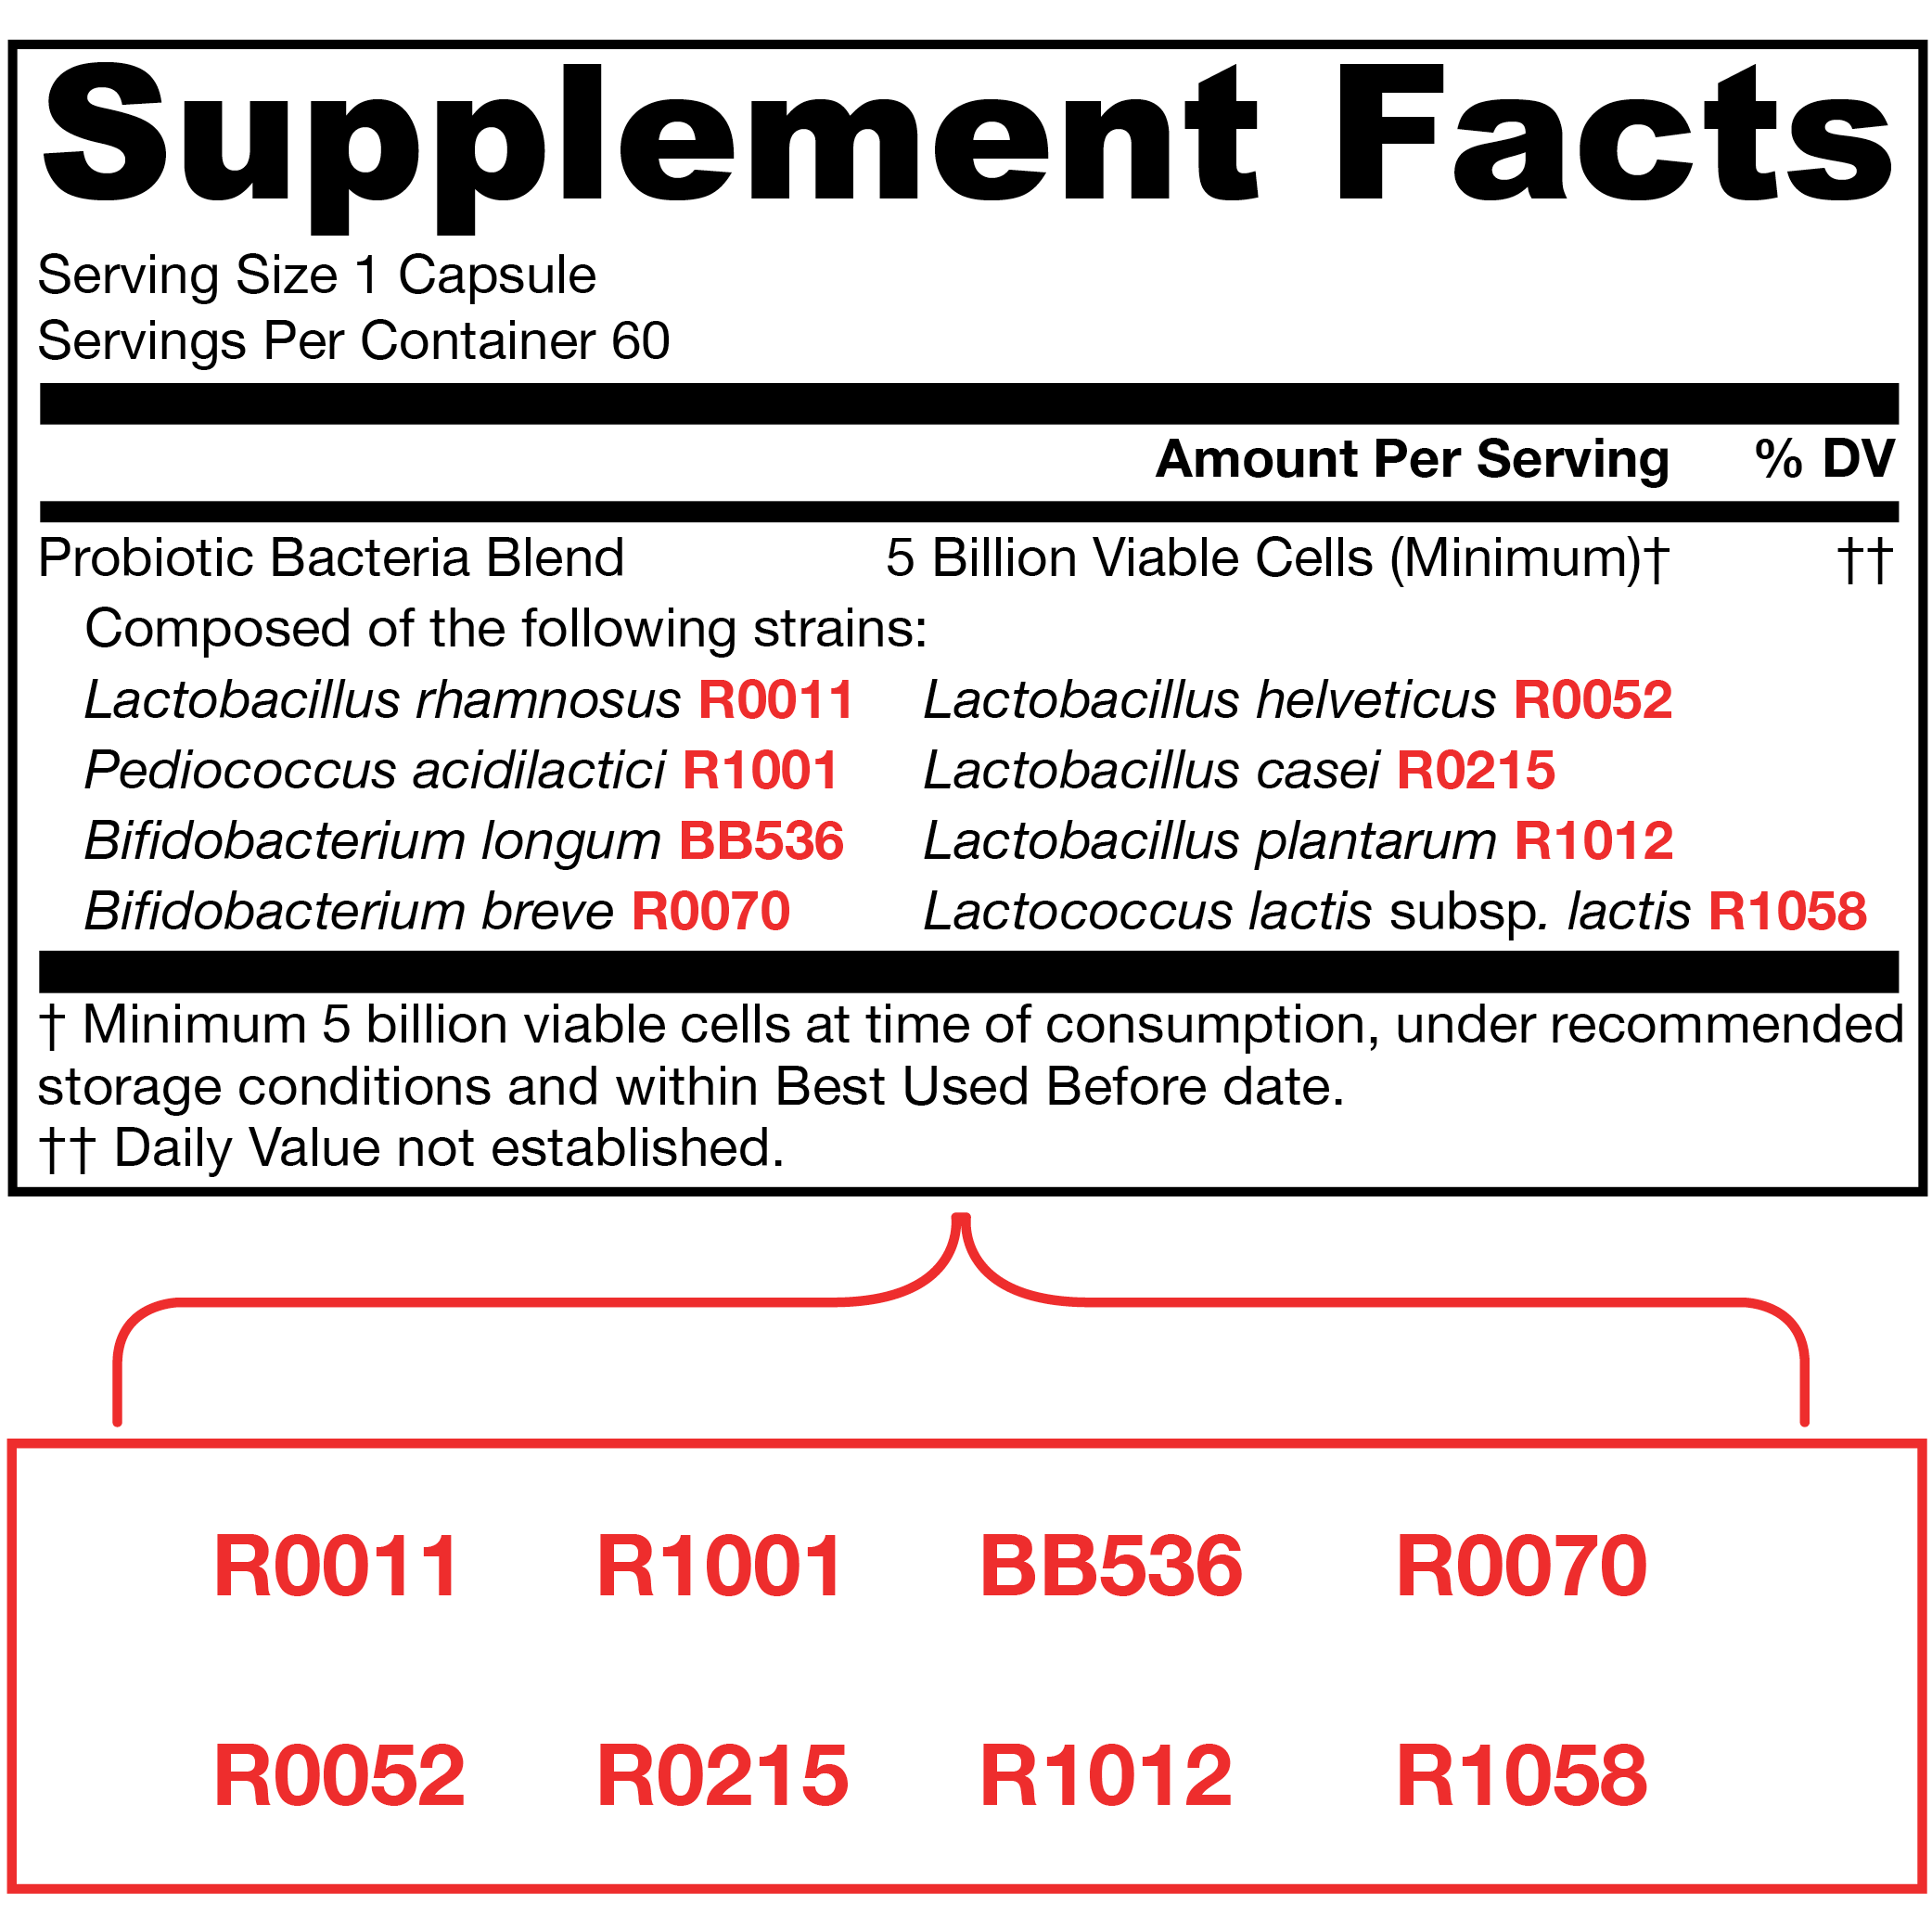 Image of the supplement facts for Jarro Dophilus EPS. The strain identifiers are highlighted in red to indicate the importance of strain designation